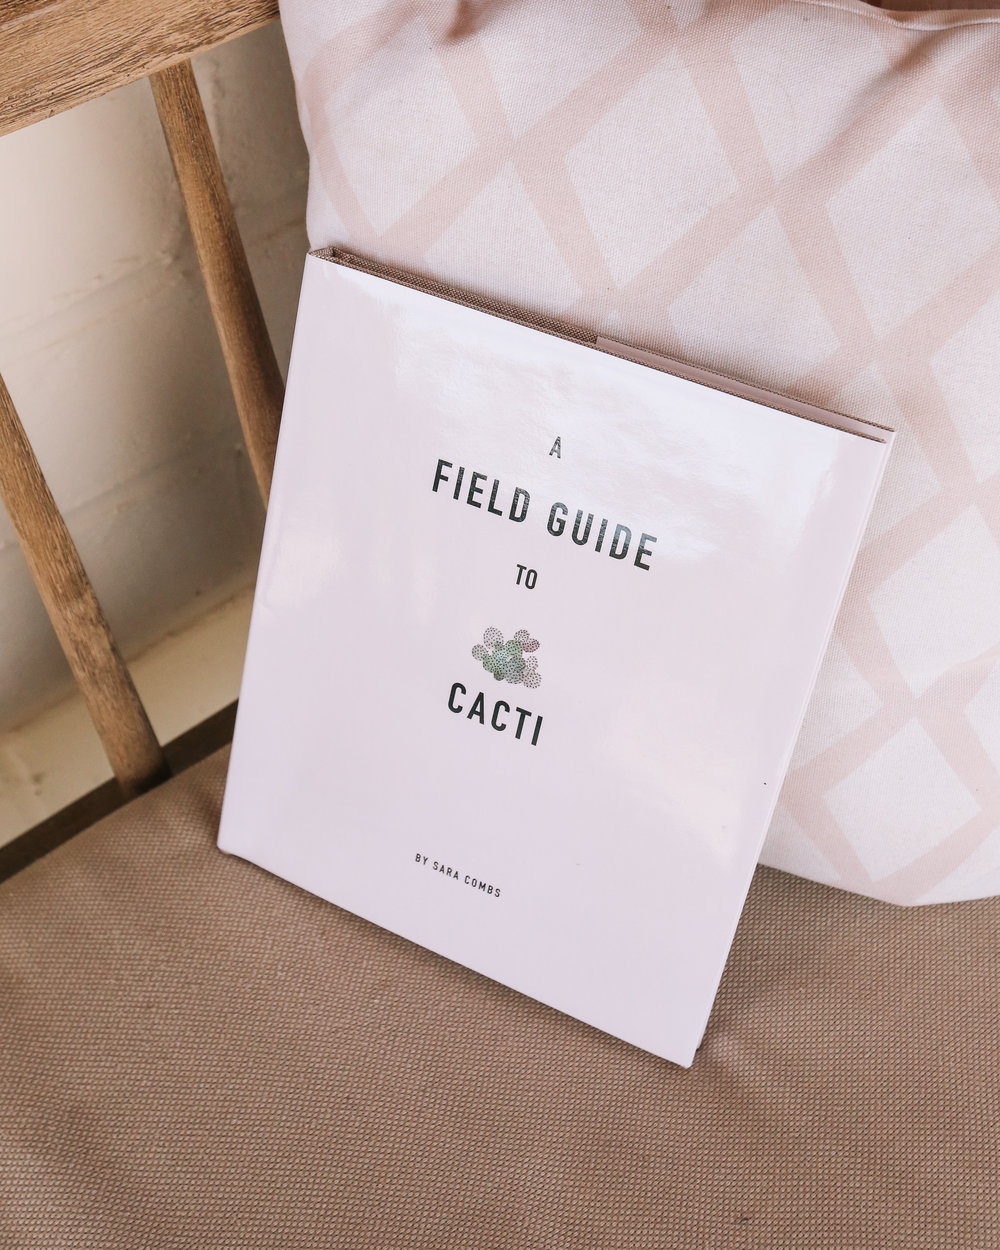 A Field Guide to Cacti by Sara Combs